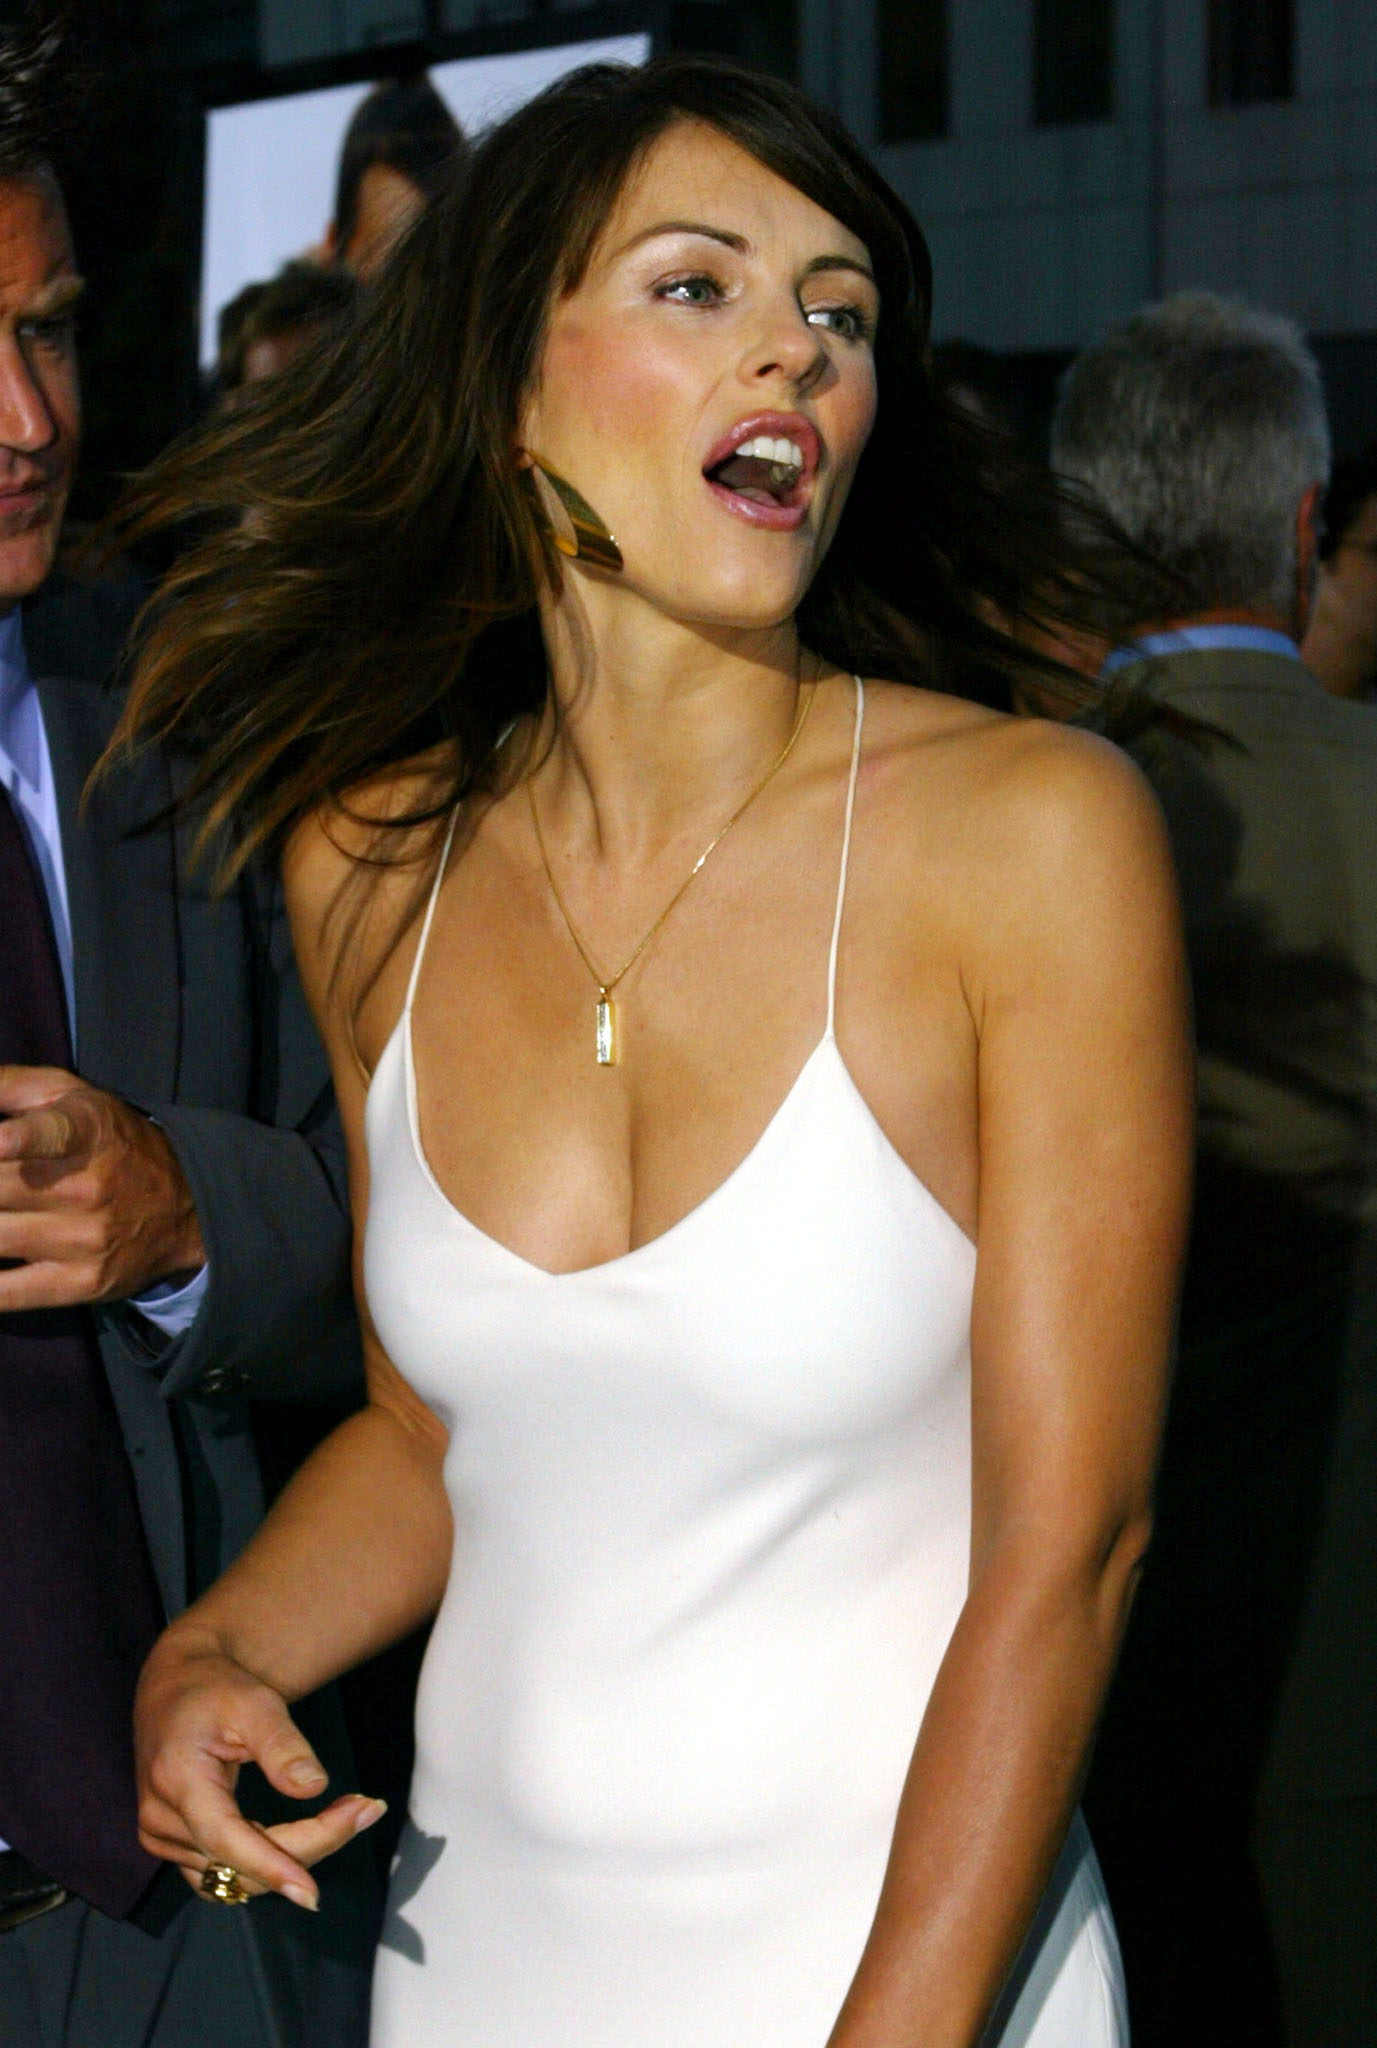 """British actress Elizabeth Hurley star of the new comedy film """"Serving Sara"""" acknowledge fans at the film's premiere August 20, 2002 in Beverly Hills. In the film Matthew Perry portrays a process server who is hired to serve legal papers to Hurley's character. The film opens August 23 in the United States. REUTERS/Fred Prouser  FSP"""